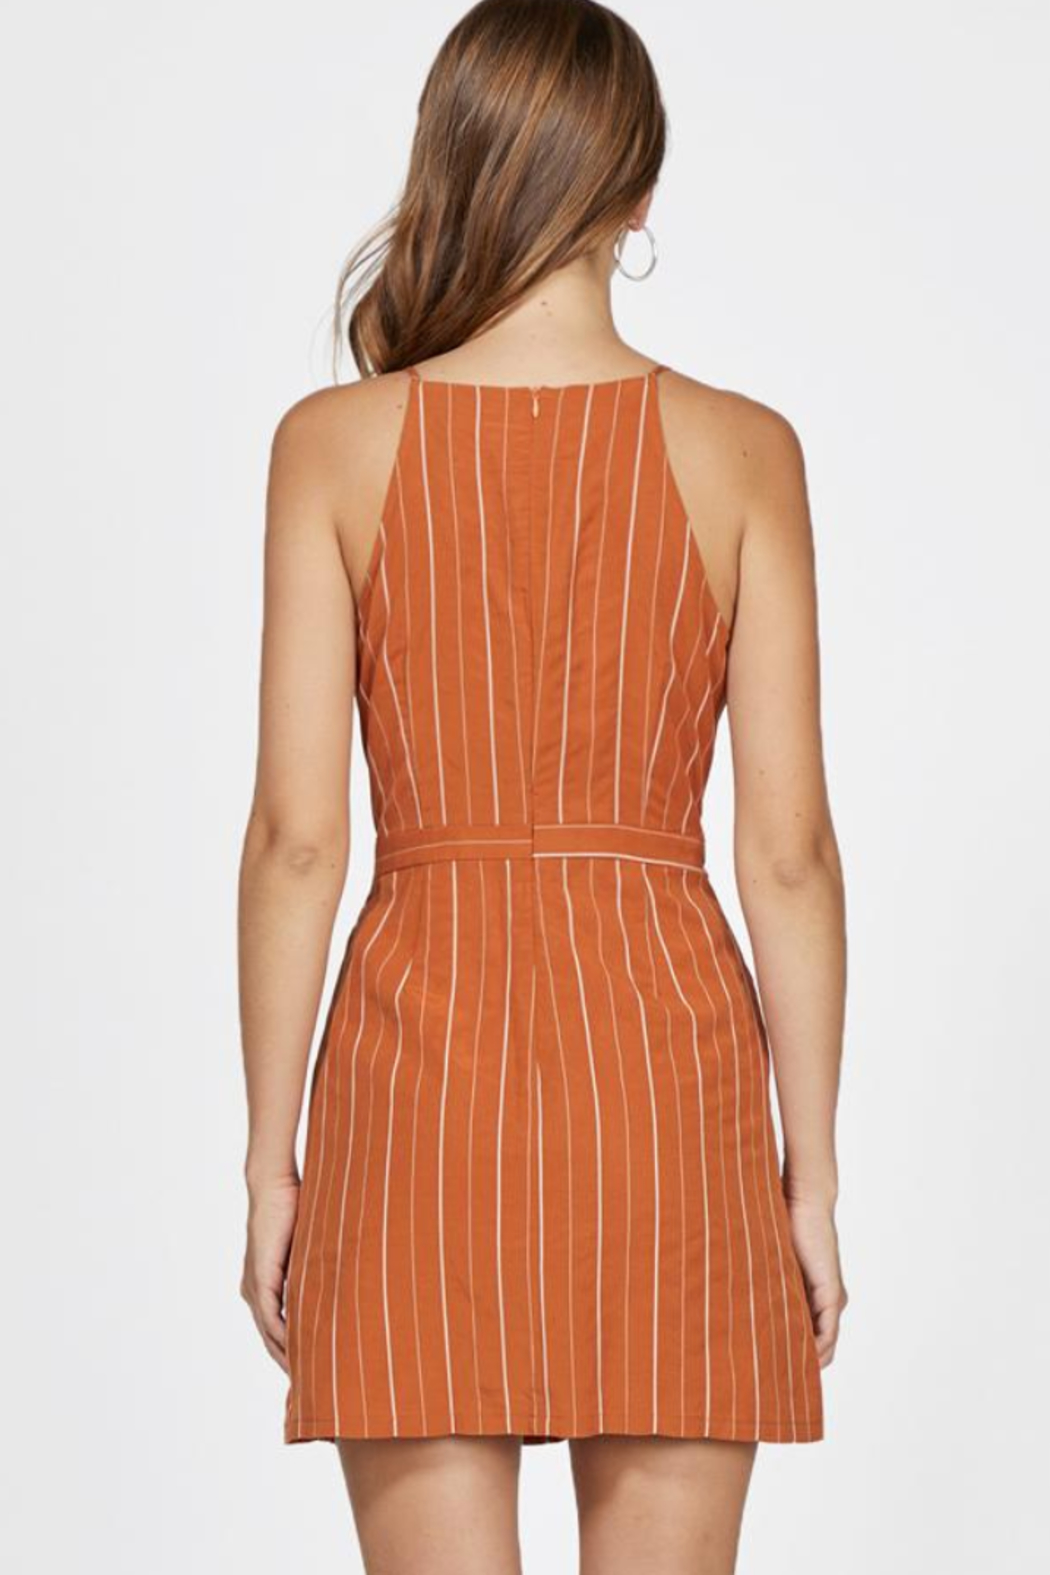 Greylin Bruna Pinstripe Dress - Back Cropped Image